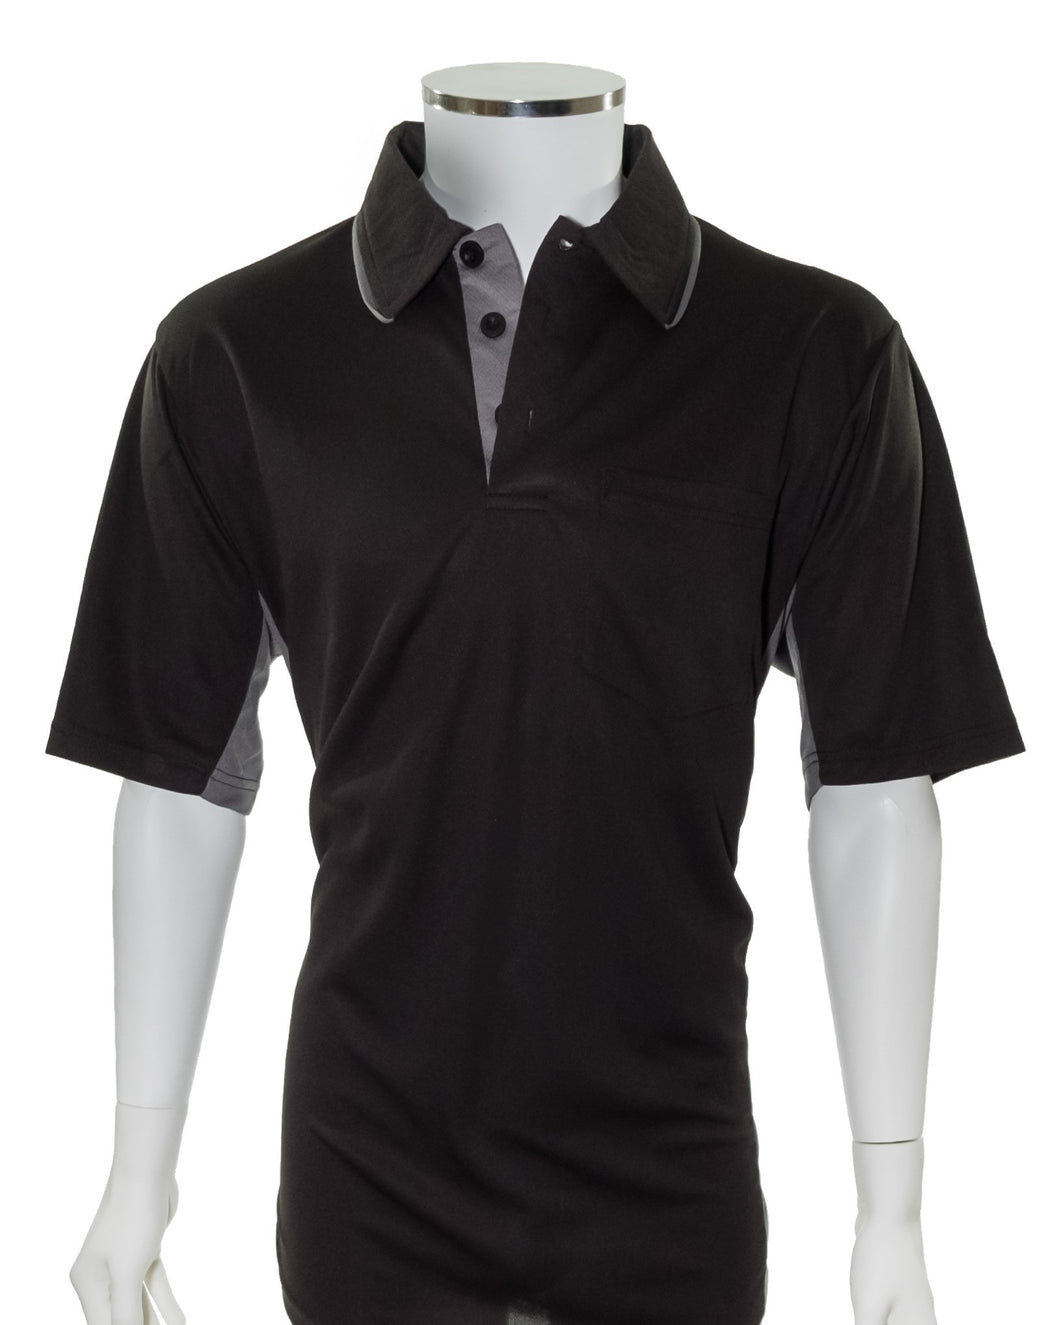 AeroDry Series A MLB Replica Umpire Shirt - Black with Gray Side Panels